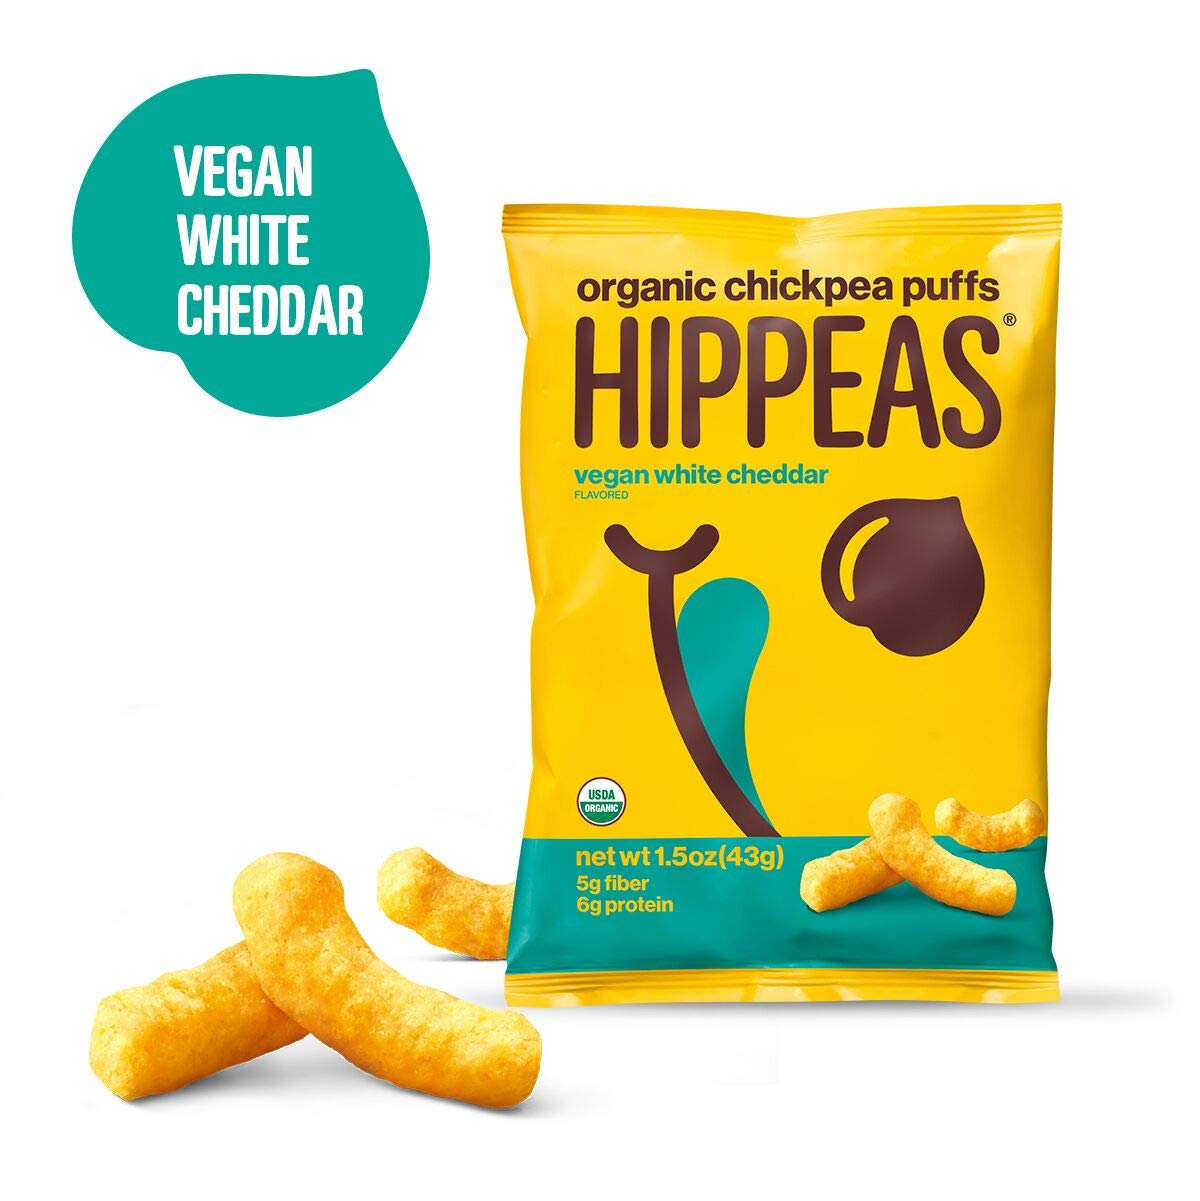 Hippeas Organic Chickpea PuffsOrganic Chickpea Puffs + Vegan White Cheddar | 1.5 ounce, 12 count | Vegan, Gluten-Free, Crunchy, Protein Snacks